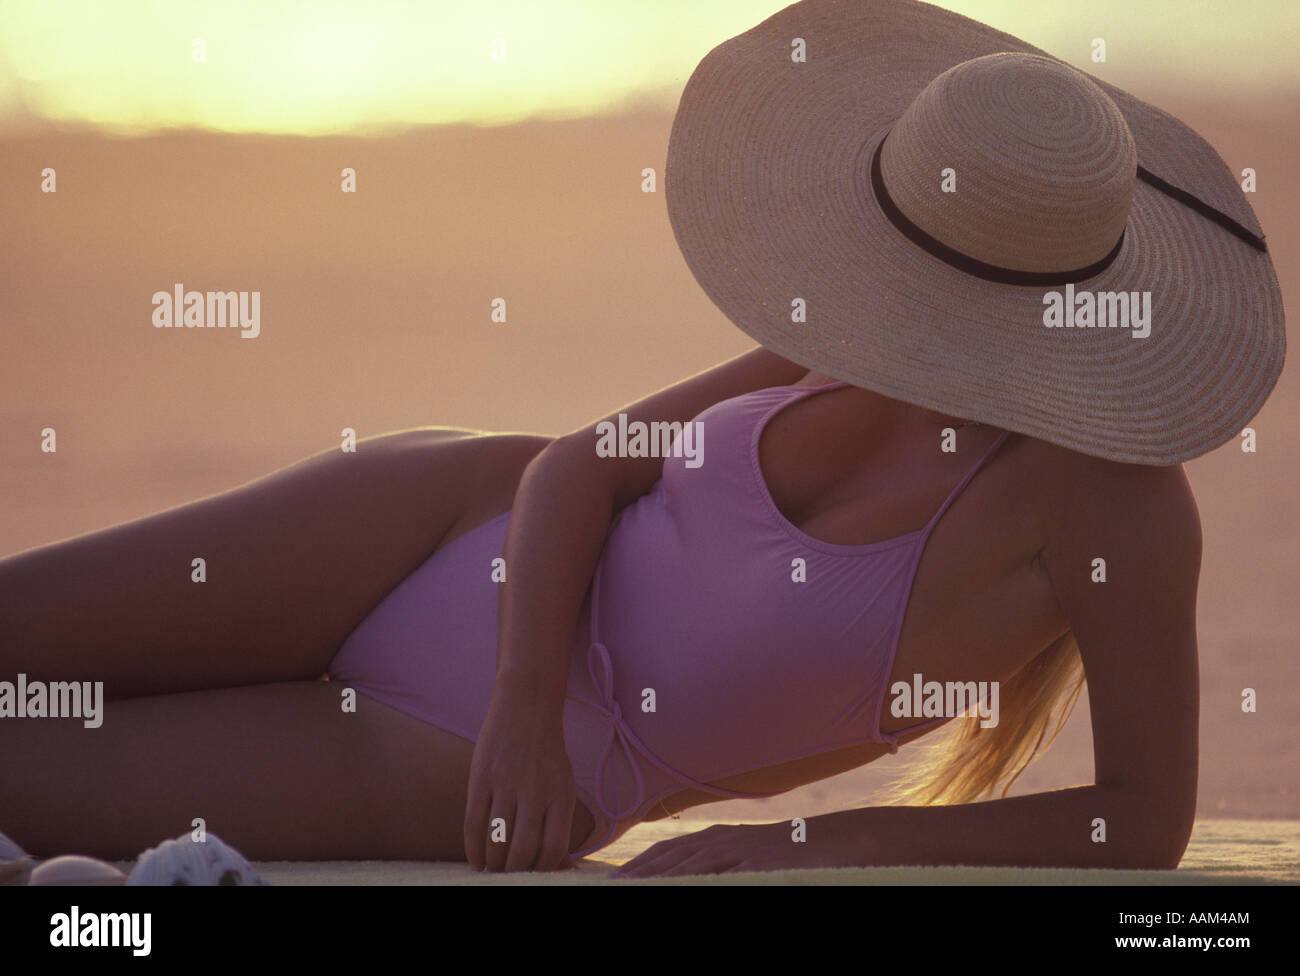 1980s WOMAN SUNBATHING WEARING LARGE STRAW HAT - Stock Image